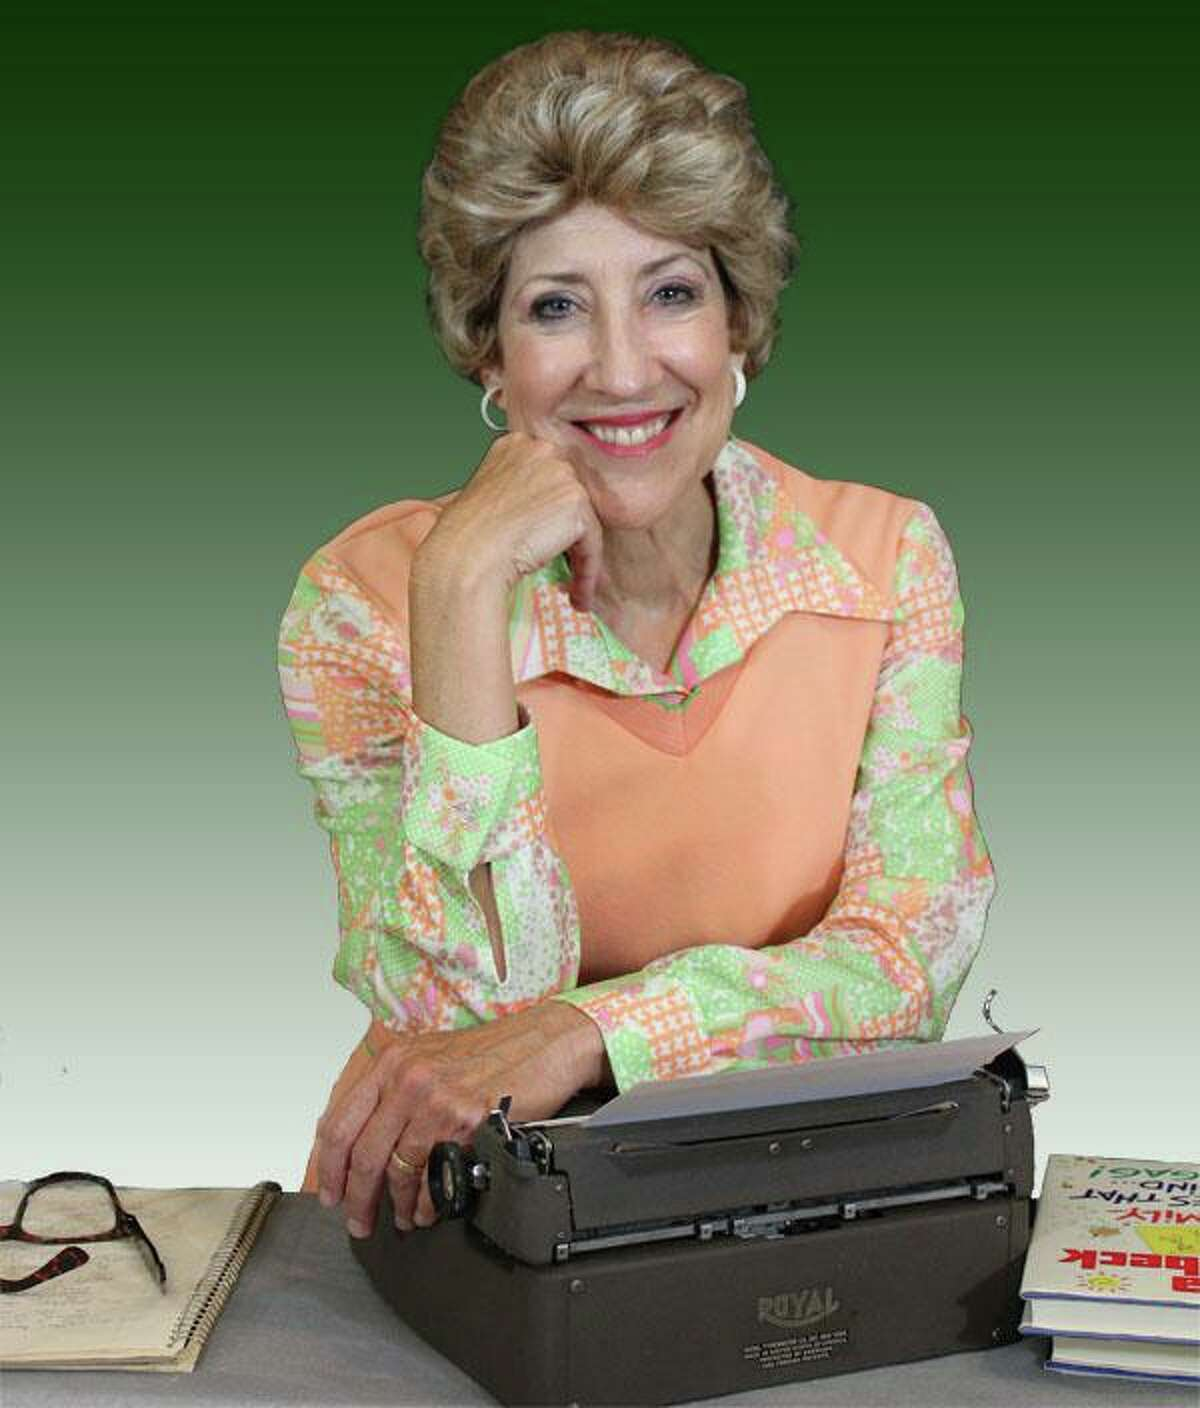 """Conroe actress Carolyn Wong presents the one-woman show """"Erma Bombeck: At Wit's End"""" June 25-27 at the Crighton Theatre in downtown Conroe."""